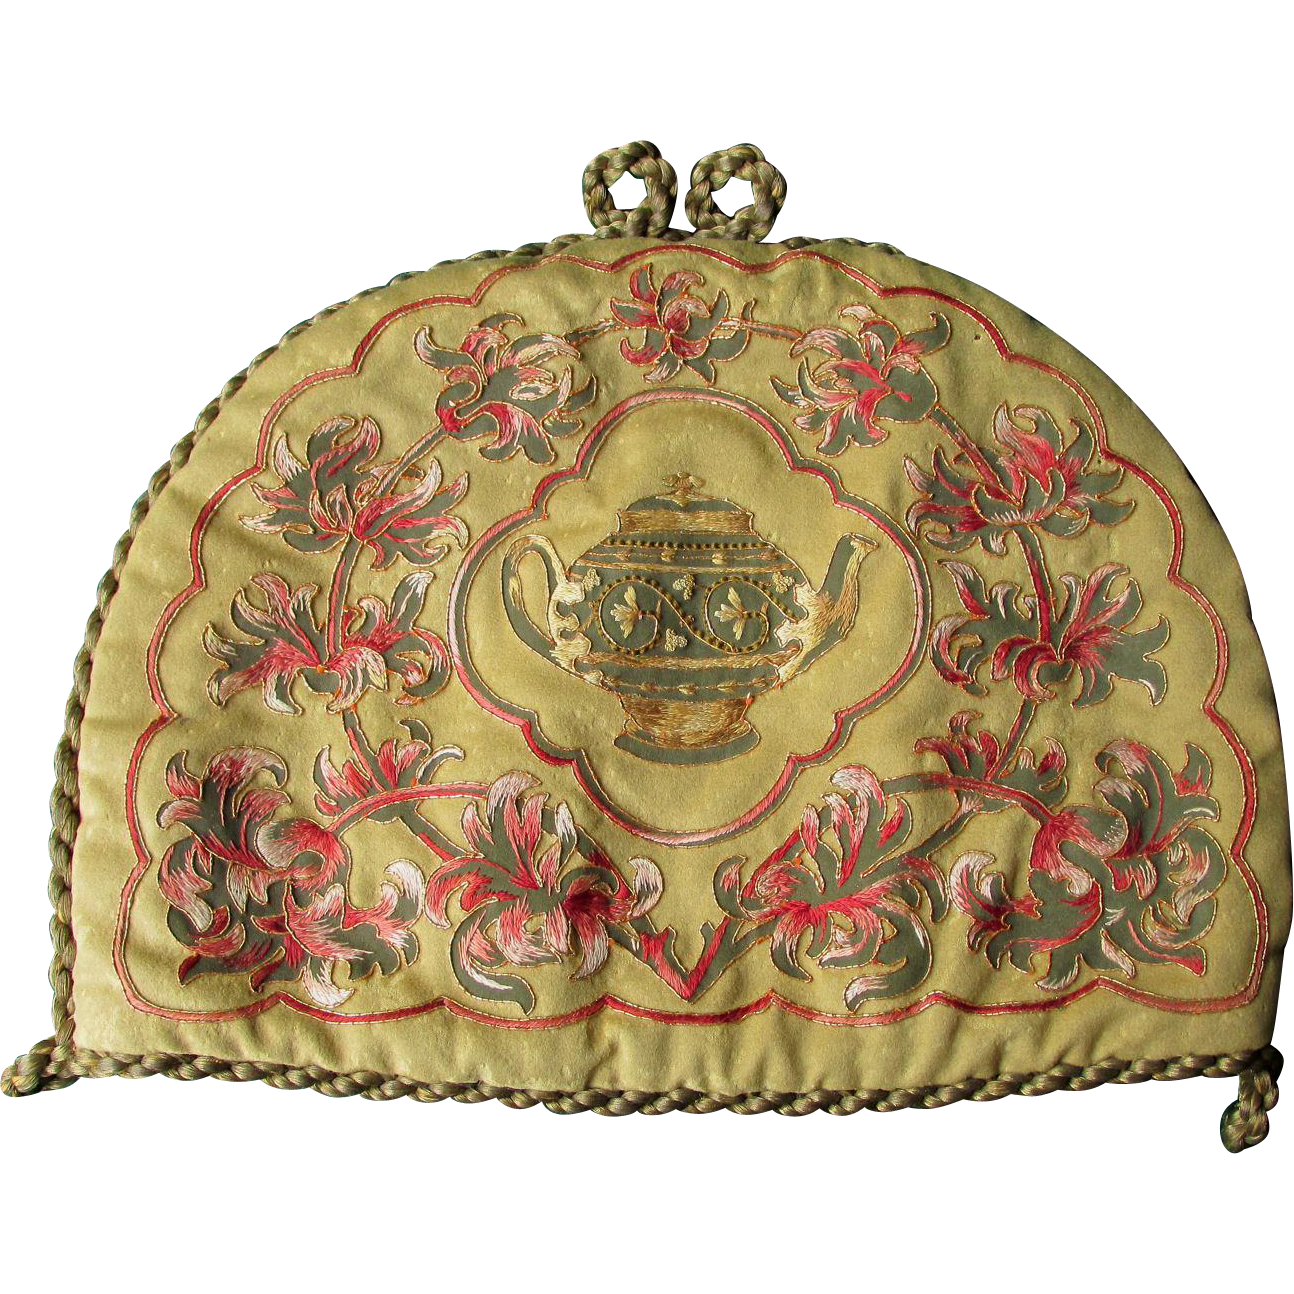 19thC Wool, Silk, Velvet Embroidered Tea Cozy with Gold Boulle Trim